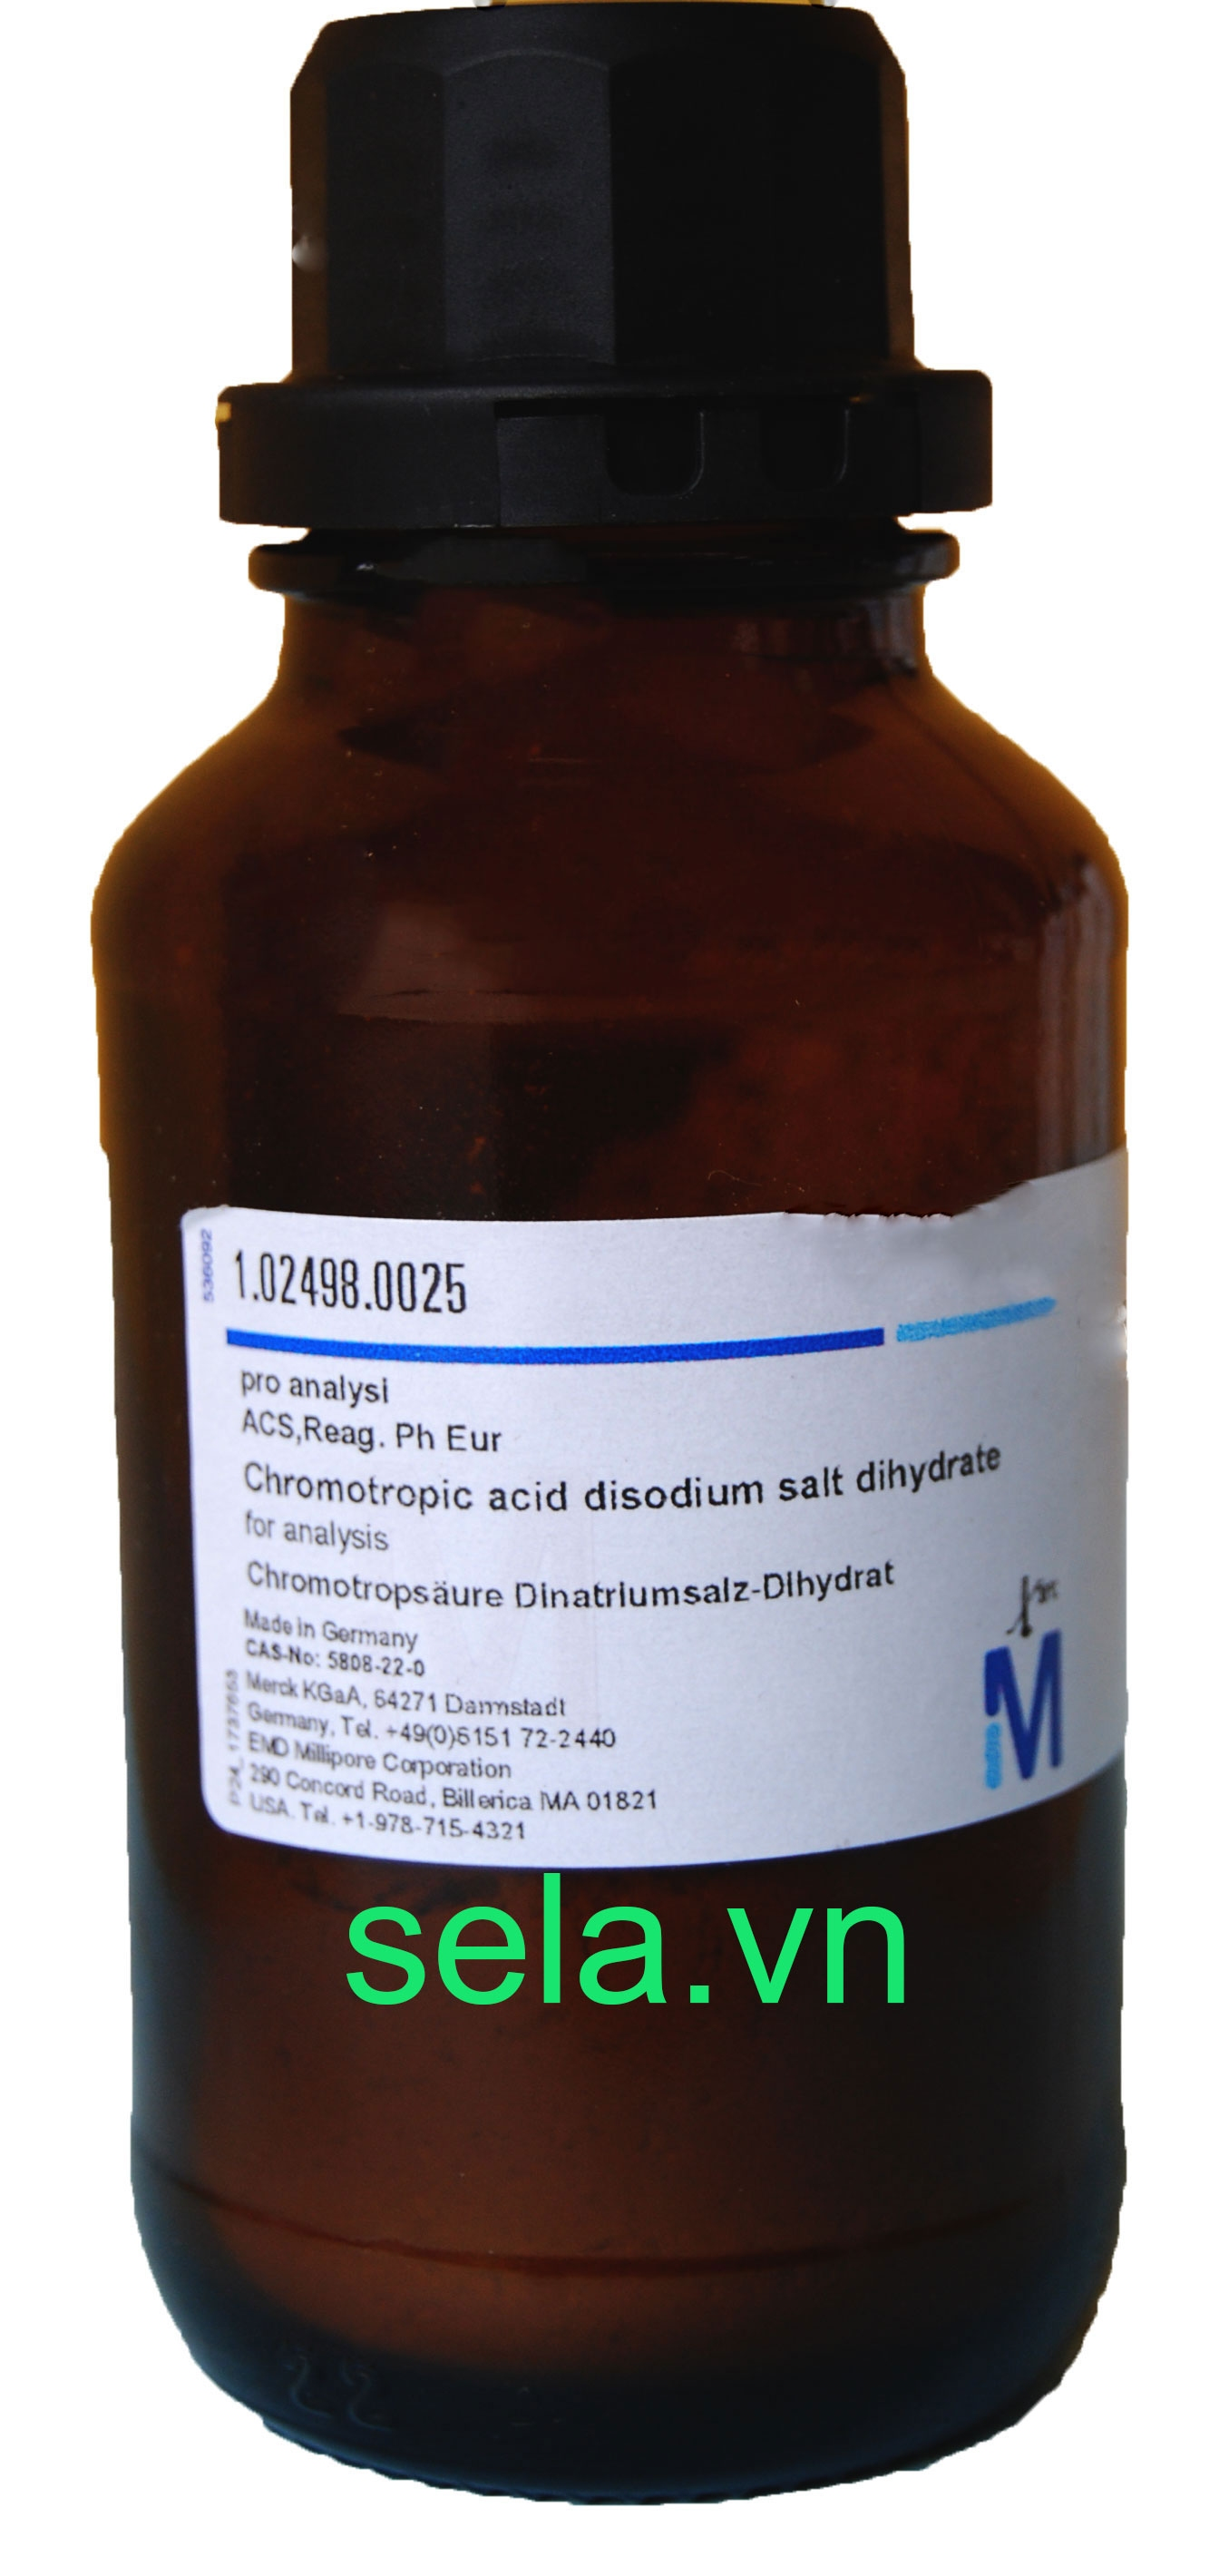 Chromotropic acid disodium salt dihydrate for analysis ACS,Reag. Ph Eur